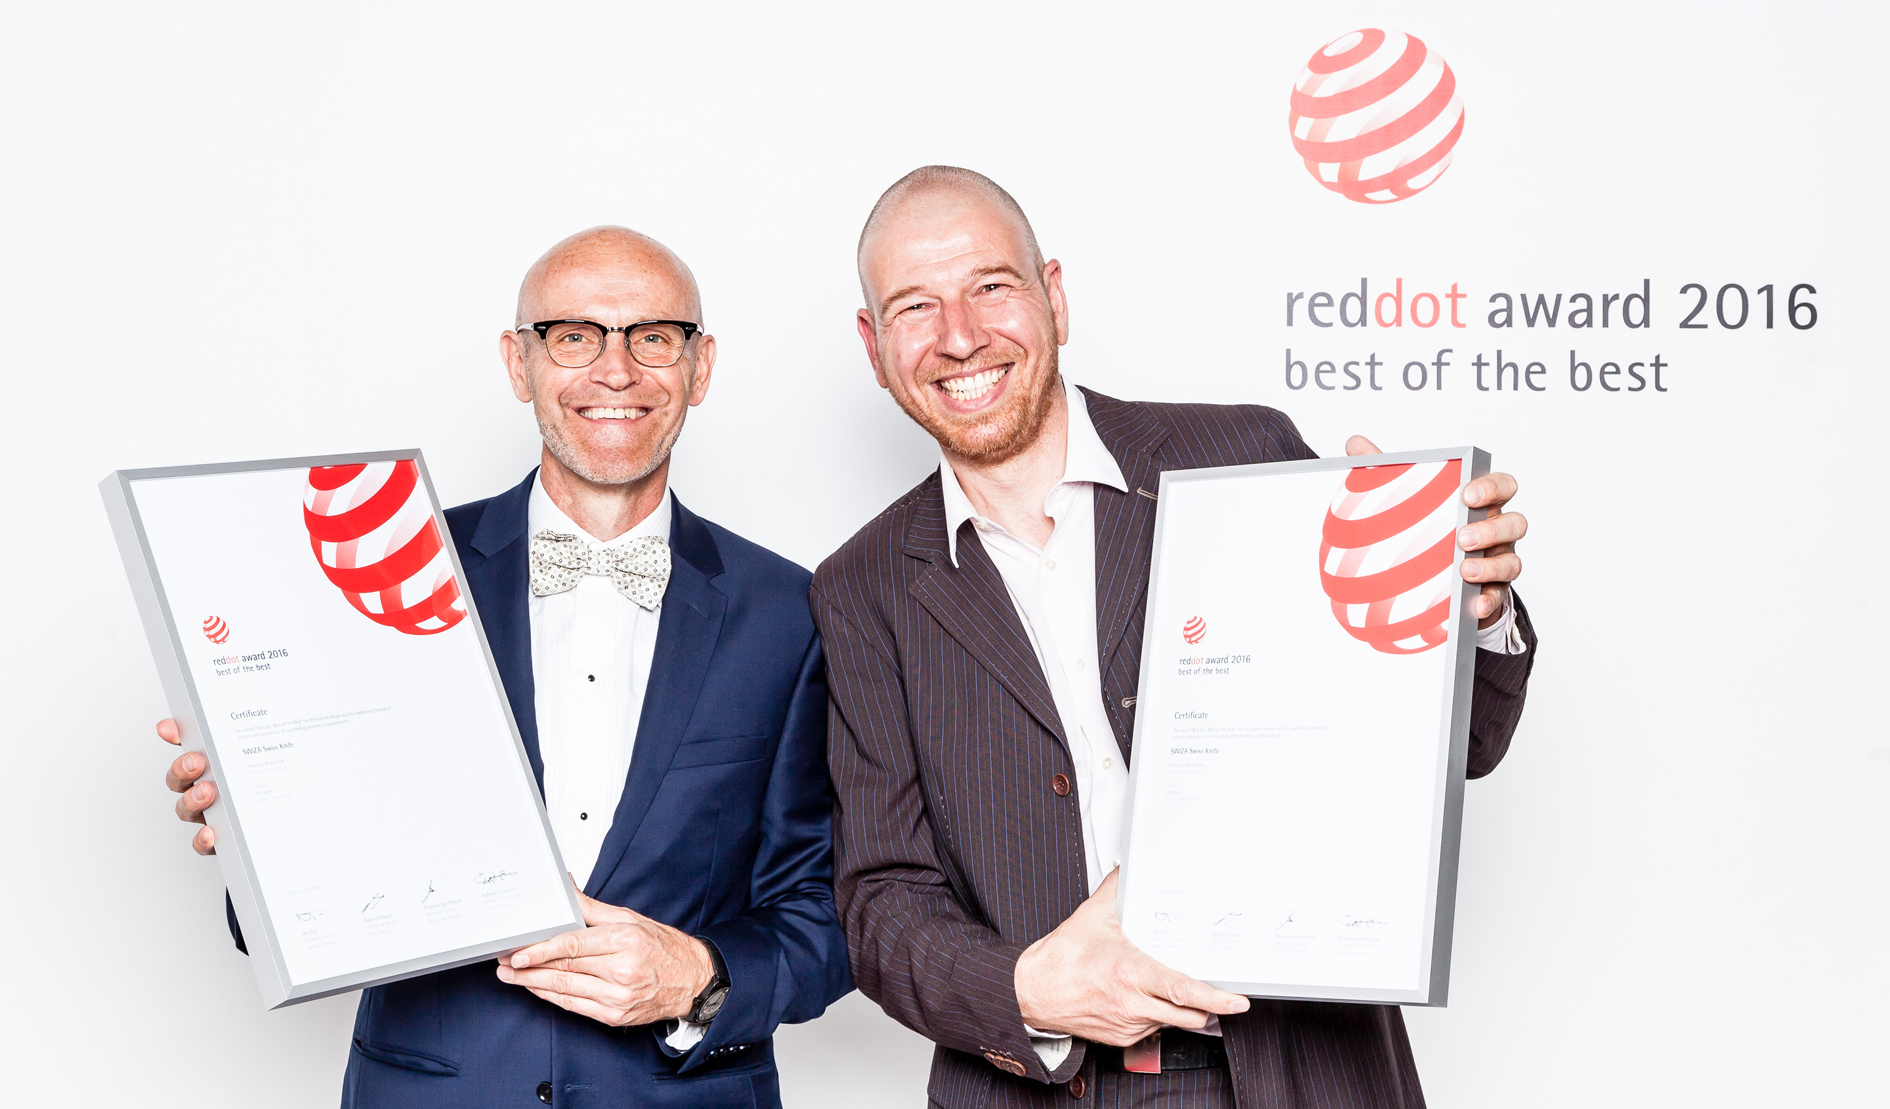 Red Dot Award 2016 Best of Best